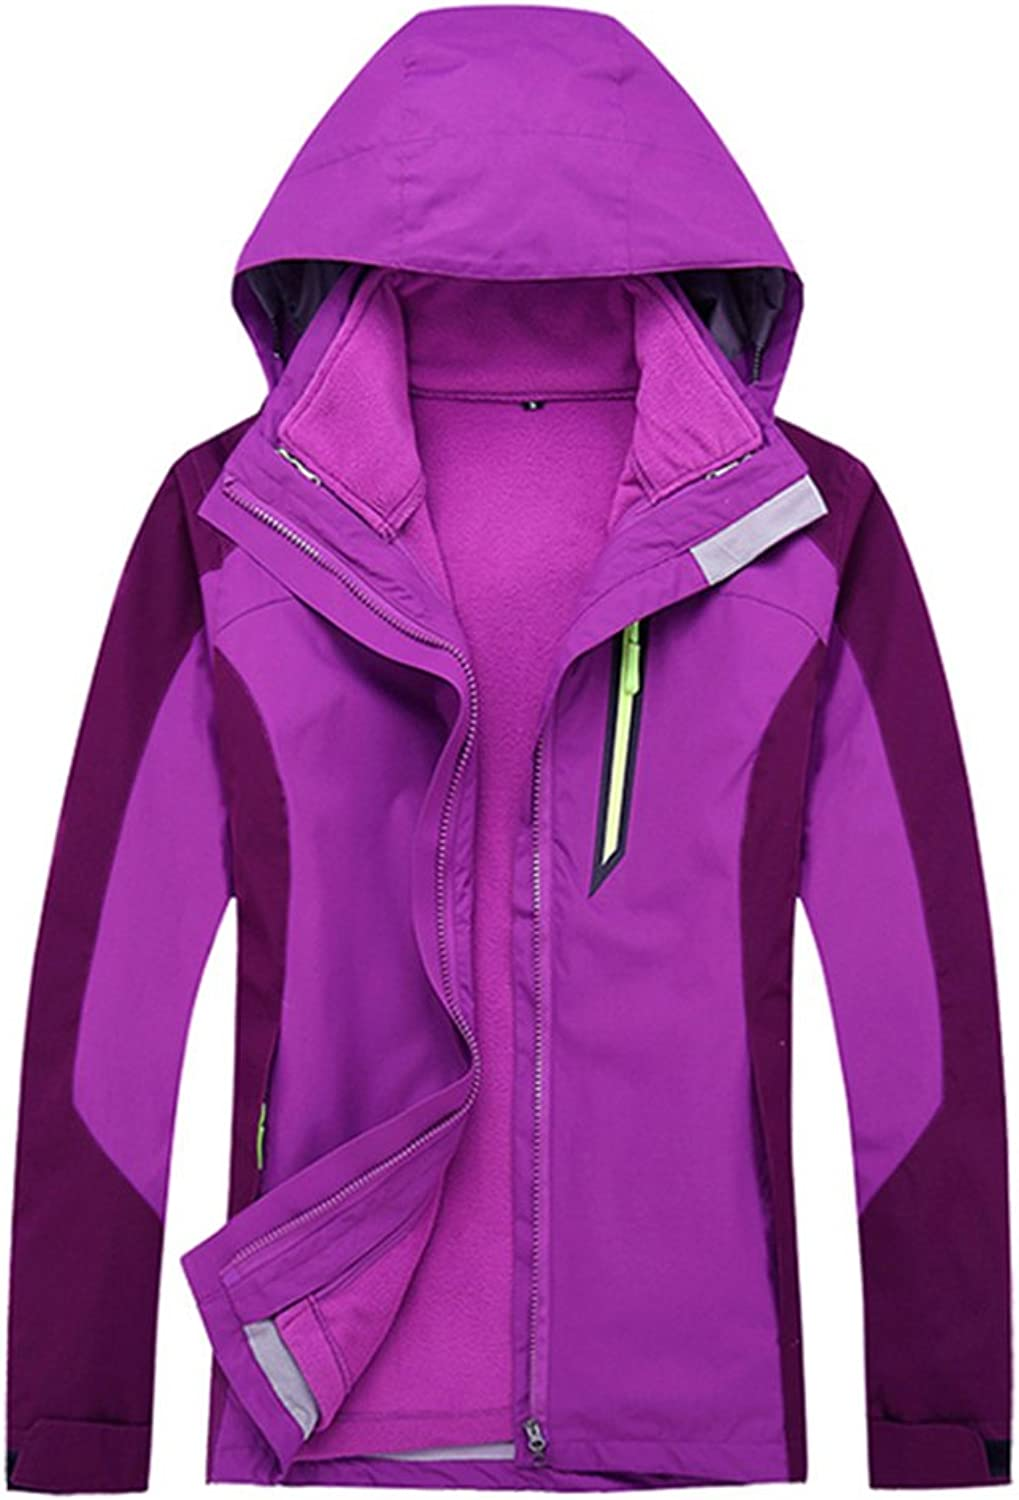 CIKRILAN Womens 3in1 Inner Fleece Jacket Stainproof Breathable AntiStatic Coats